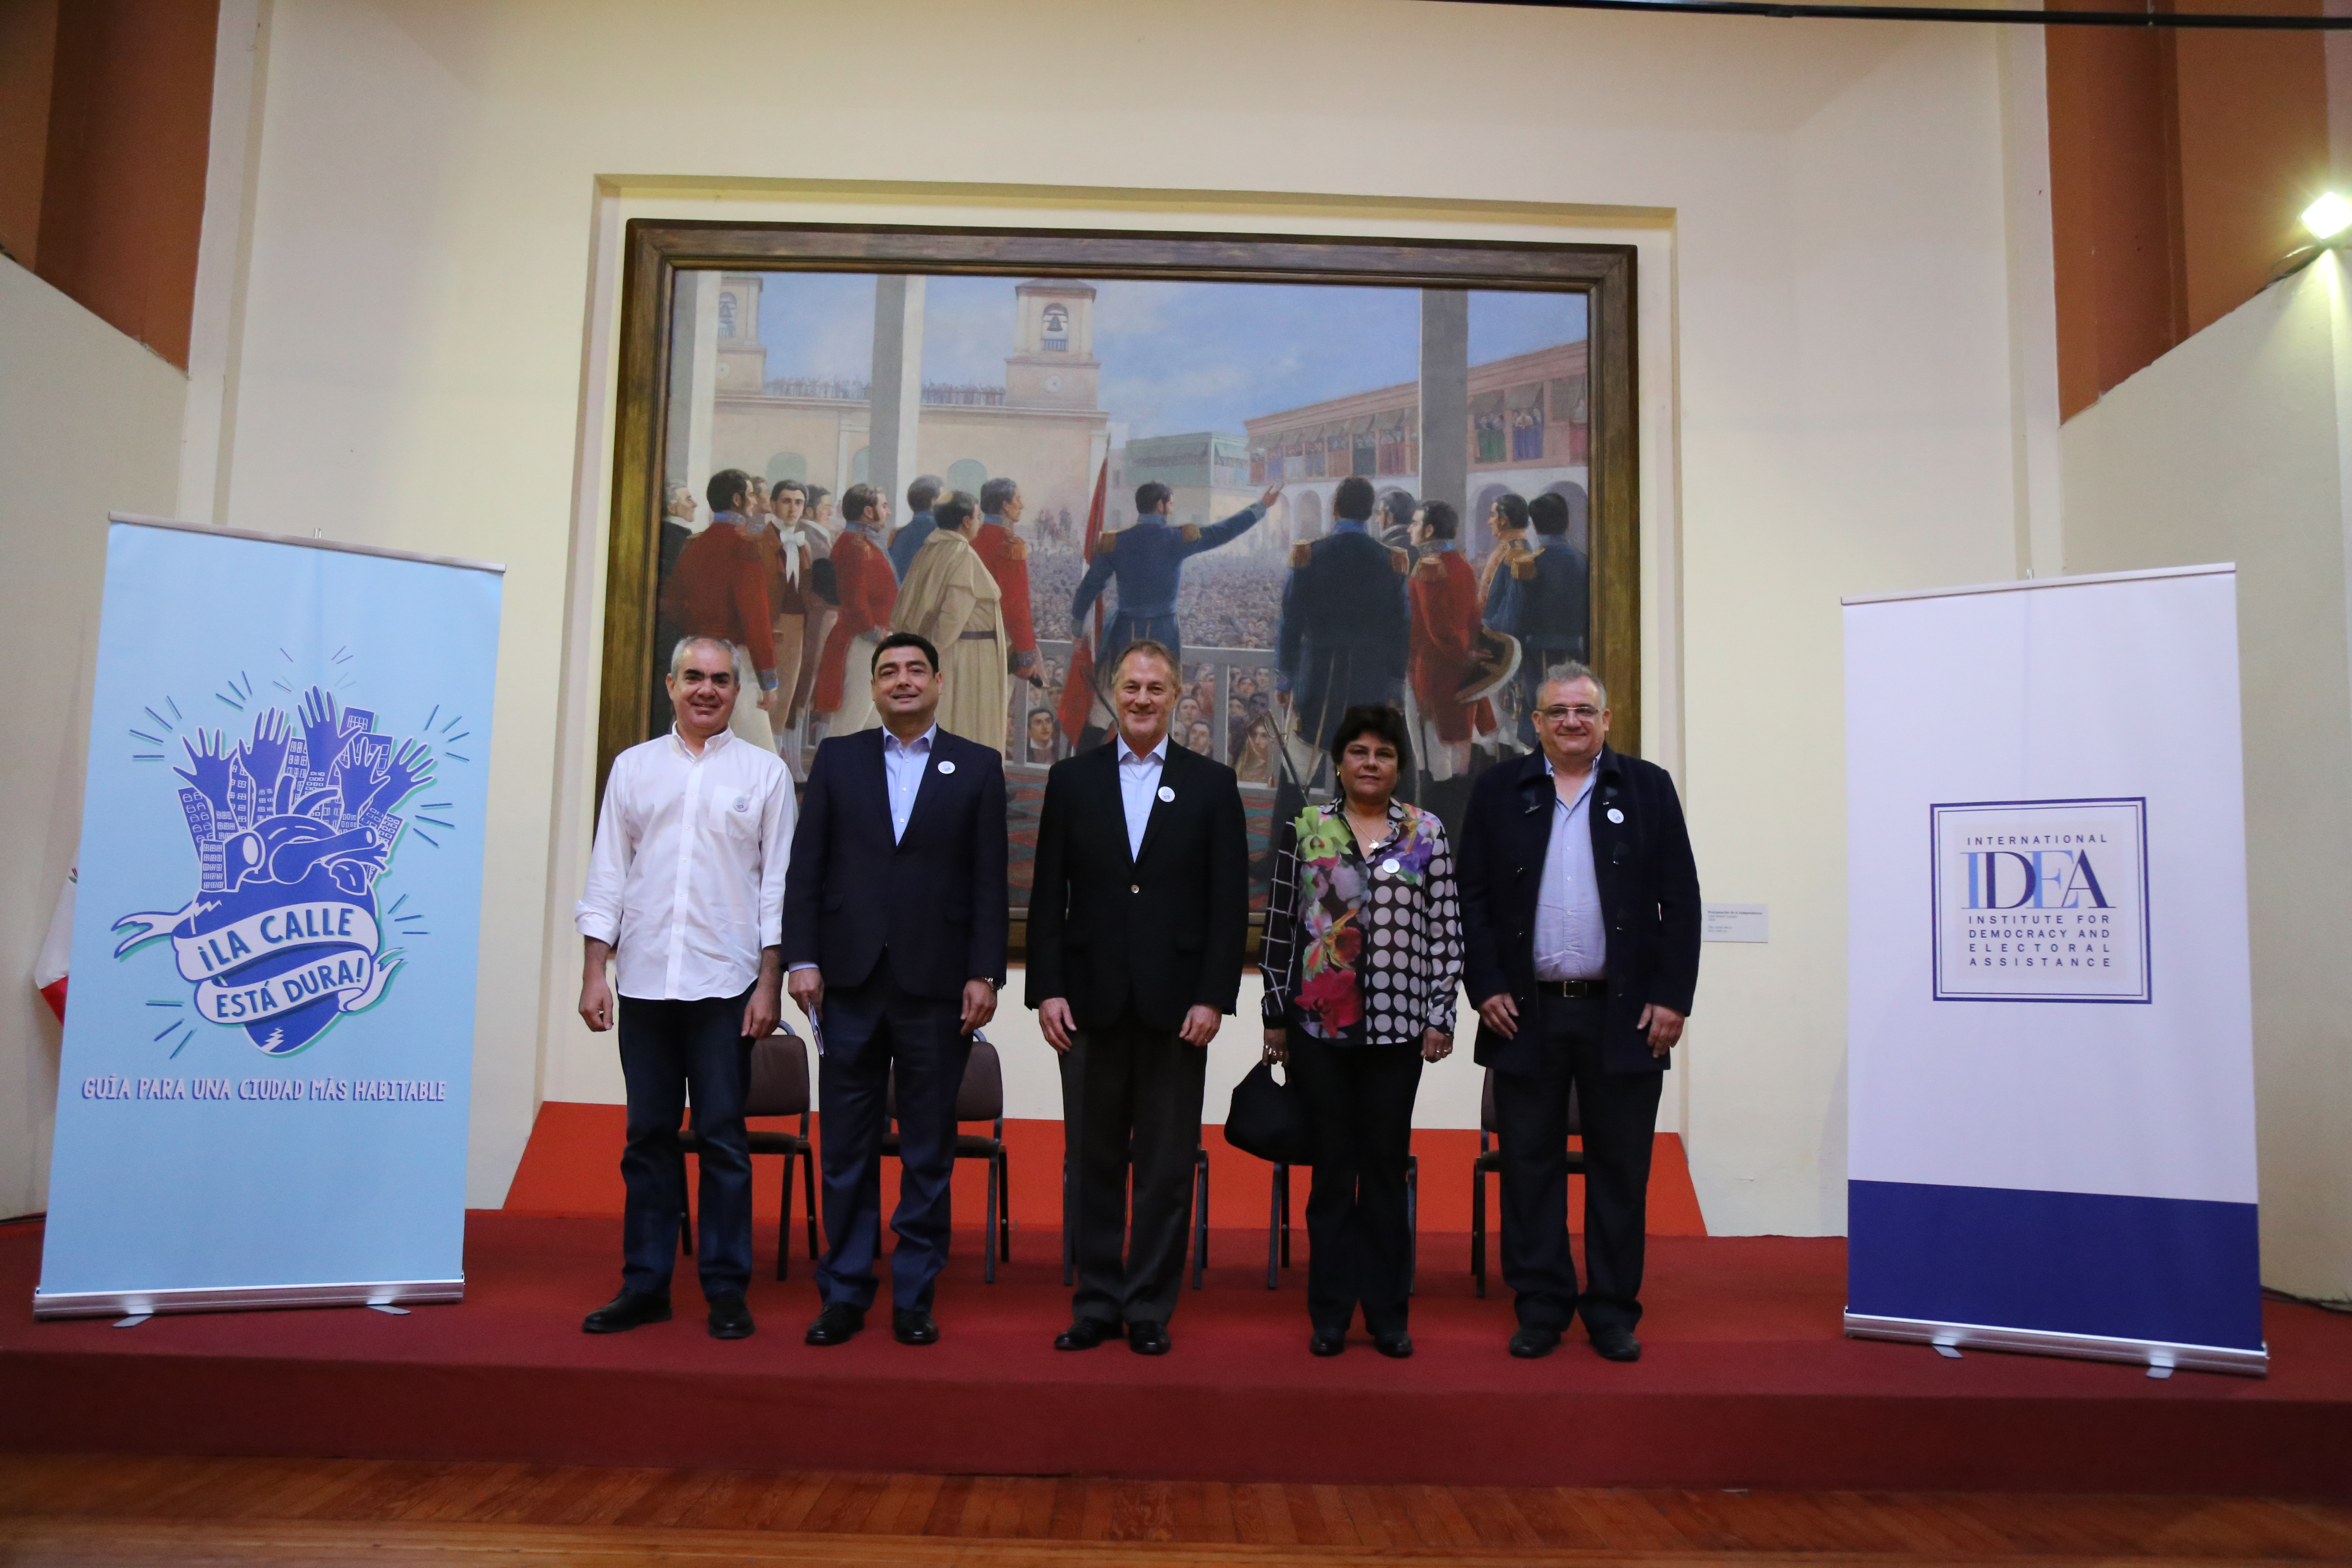 """Candidates running for the position of Mayor of Lima arrived at the launch of the """"Guide for a Livable City"""": Manuel Velarde, Jorge Villacorta, Jorge Muñoz, Norma Yarrow (representing candidate Renzo Reggiardo) and Gustavo Guerra García. Photo credit: International IDEA."""